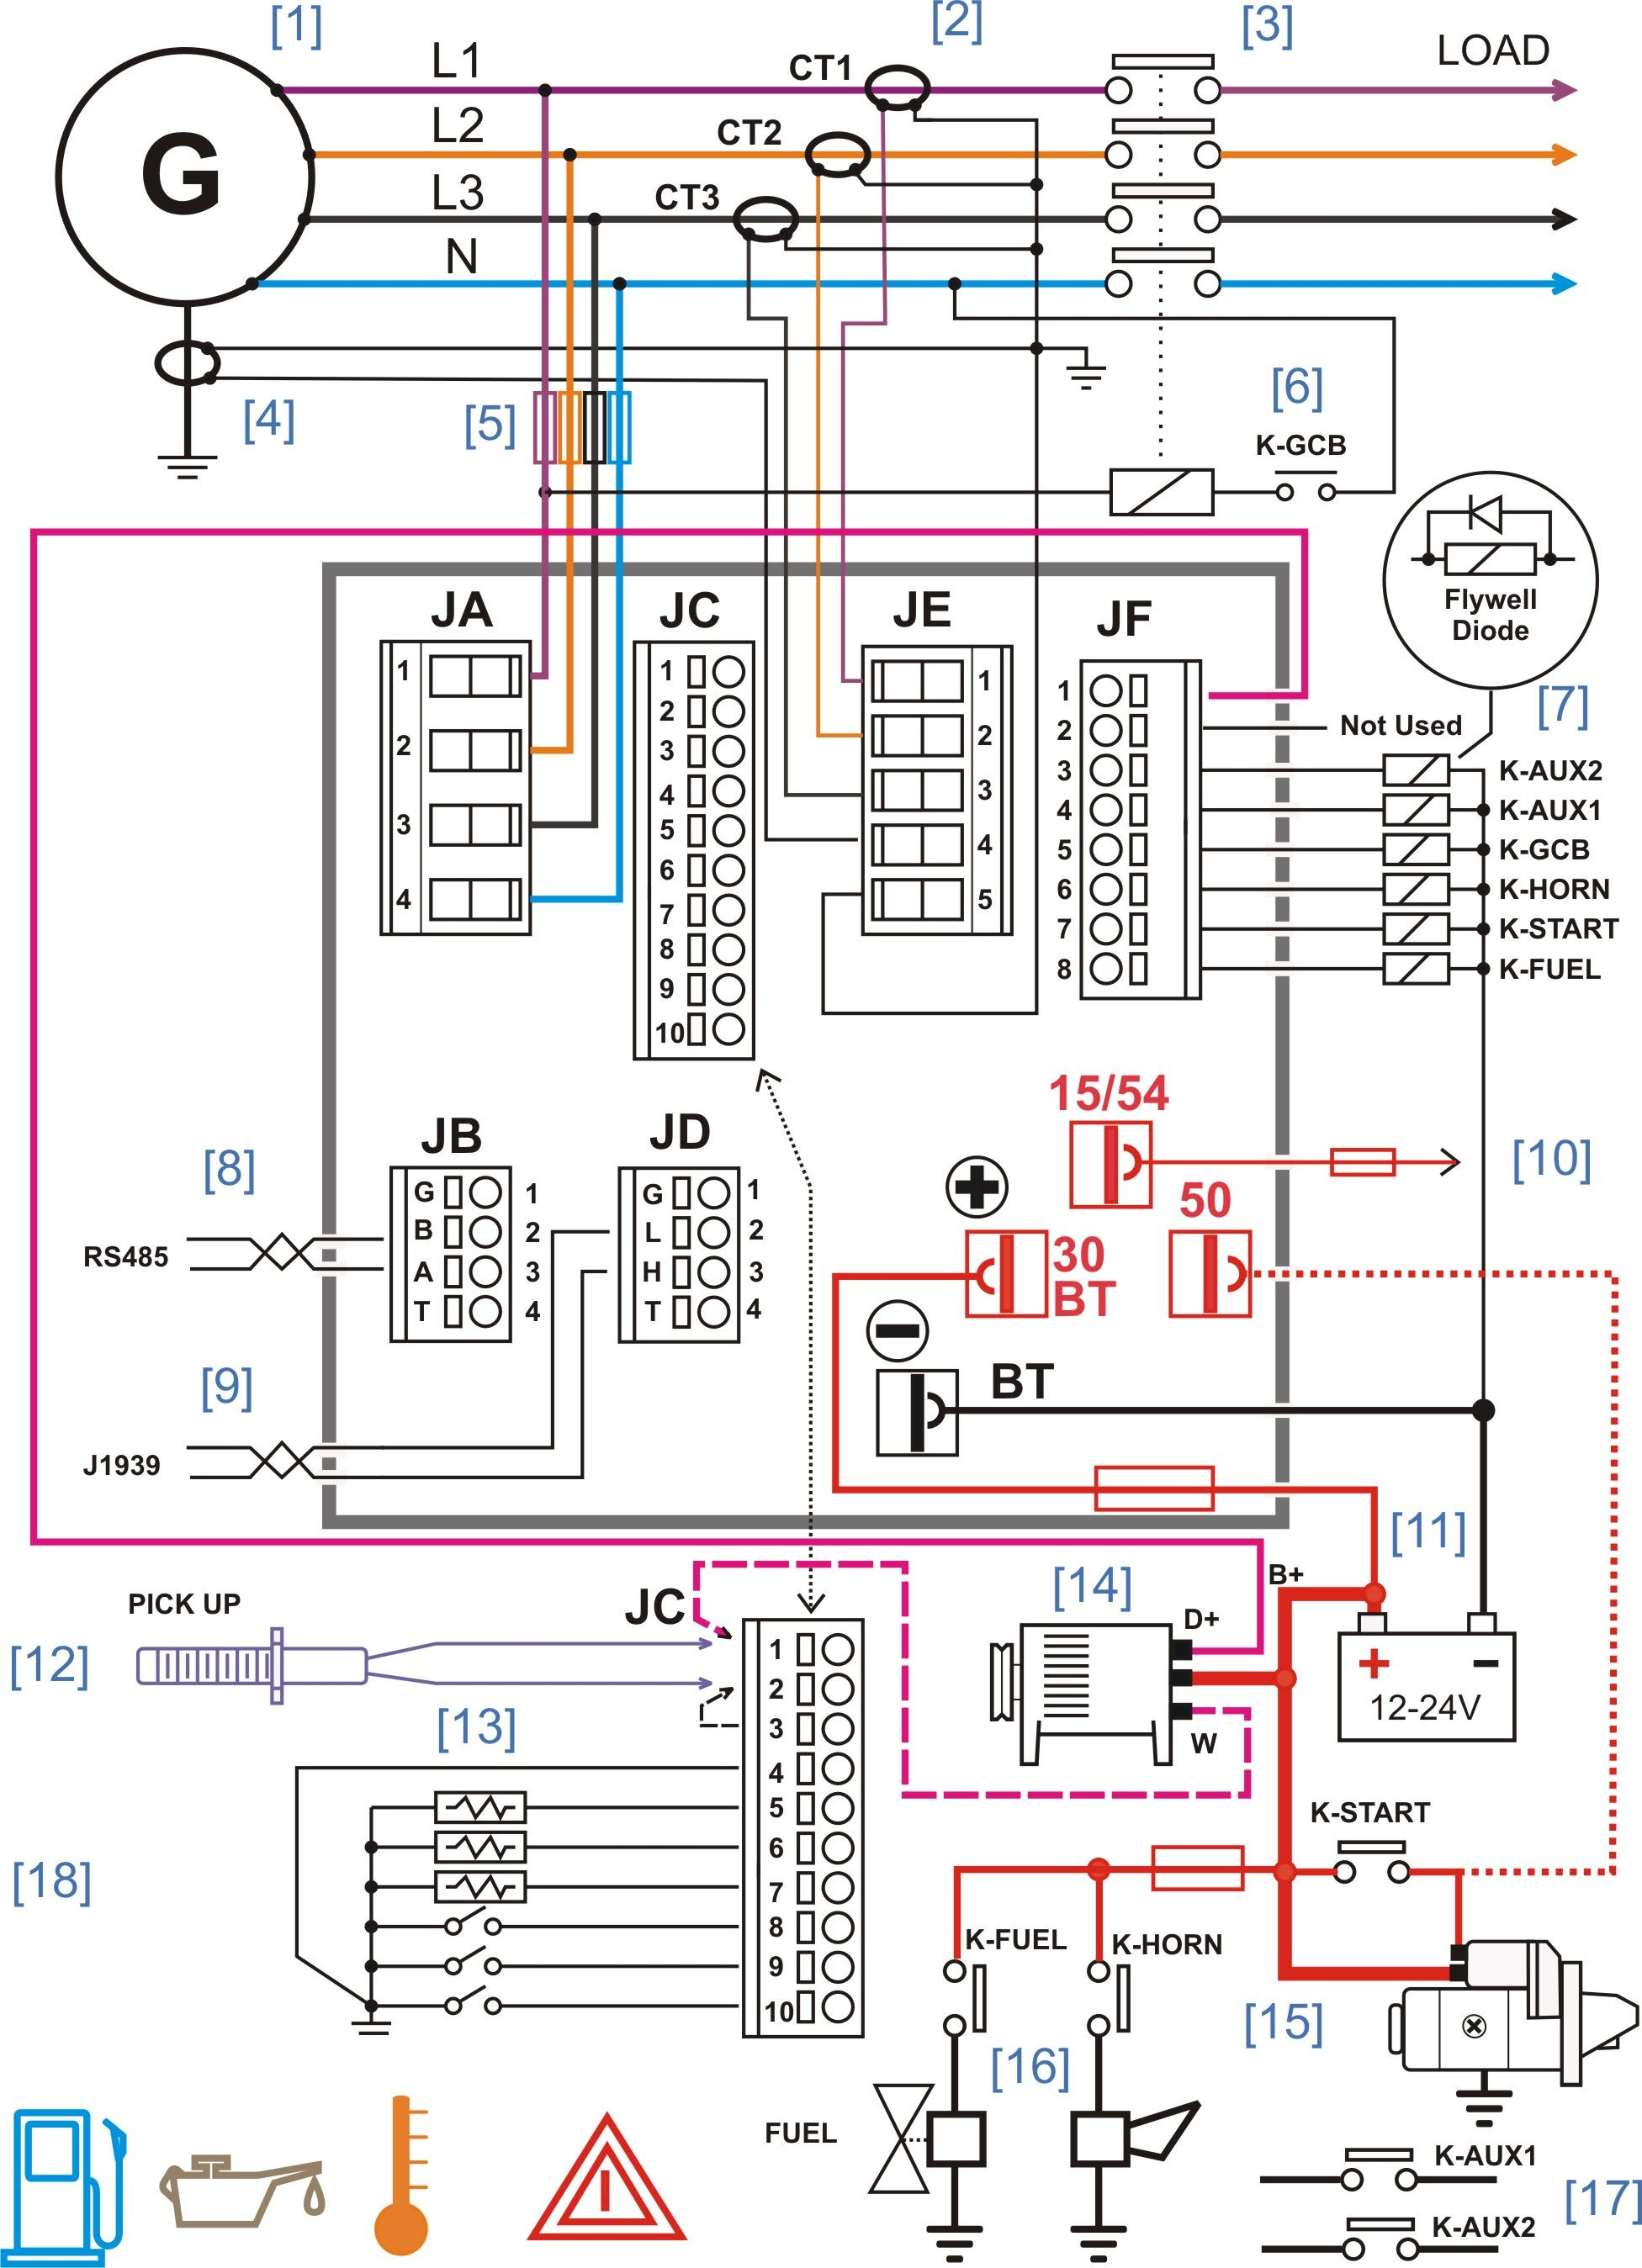 diesel generator control panel wiring diagram diesel generators rh pinterest com wiring diagram for generator transfer panel wiring diagram for generator for 220v